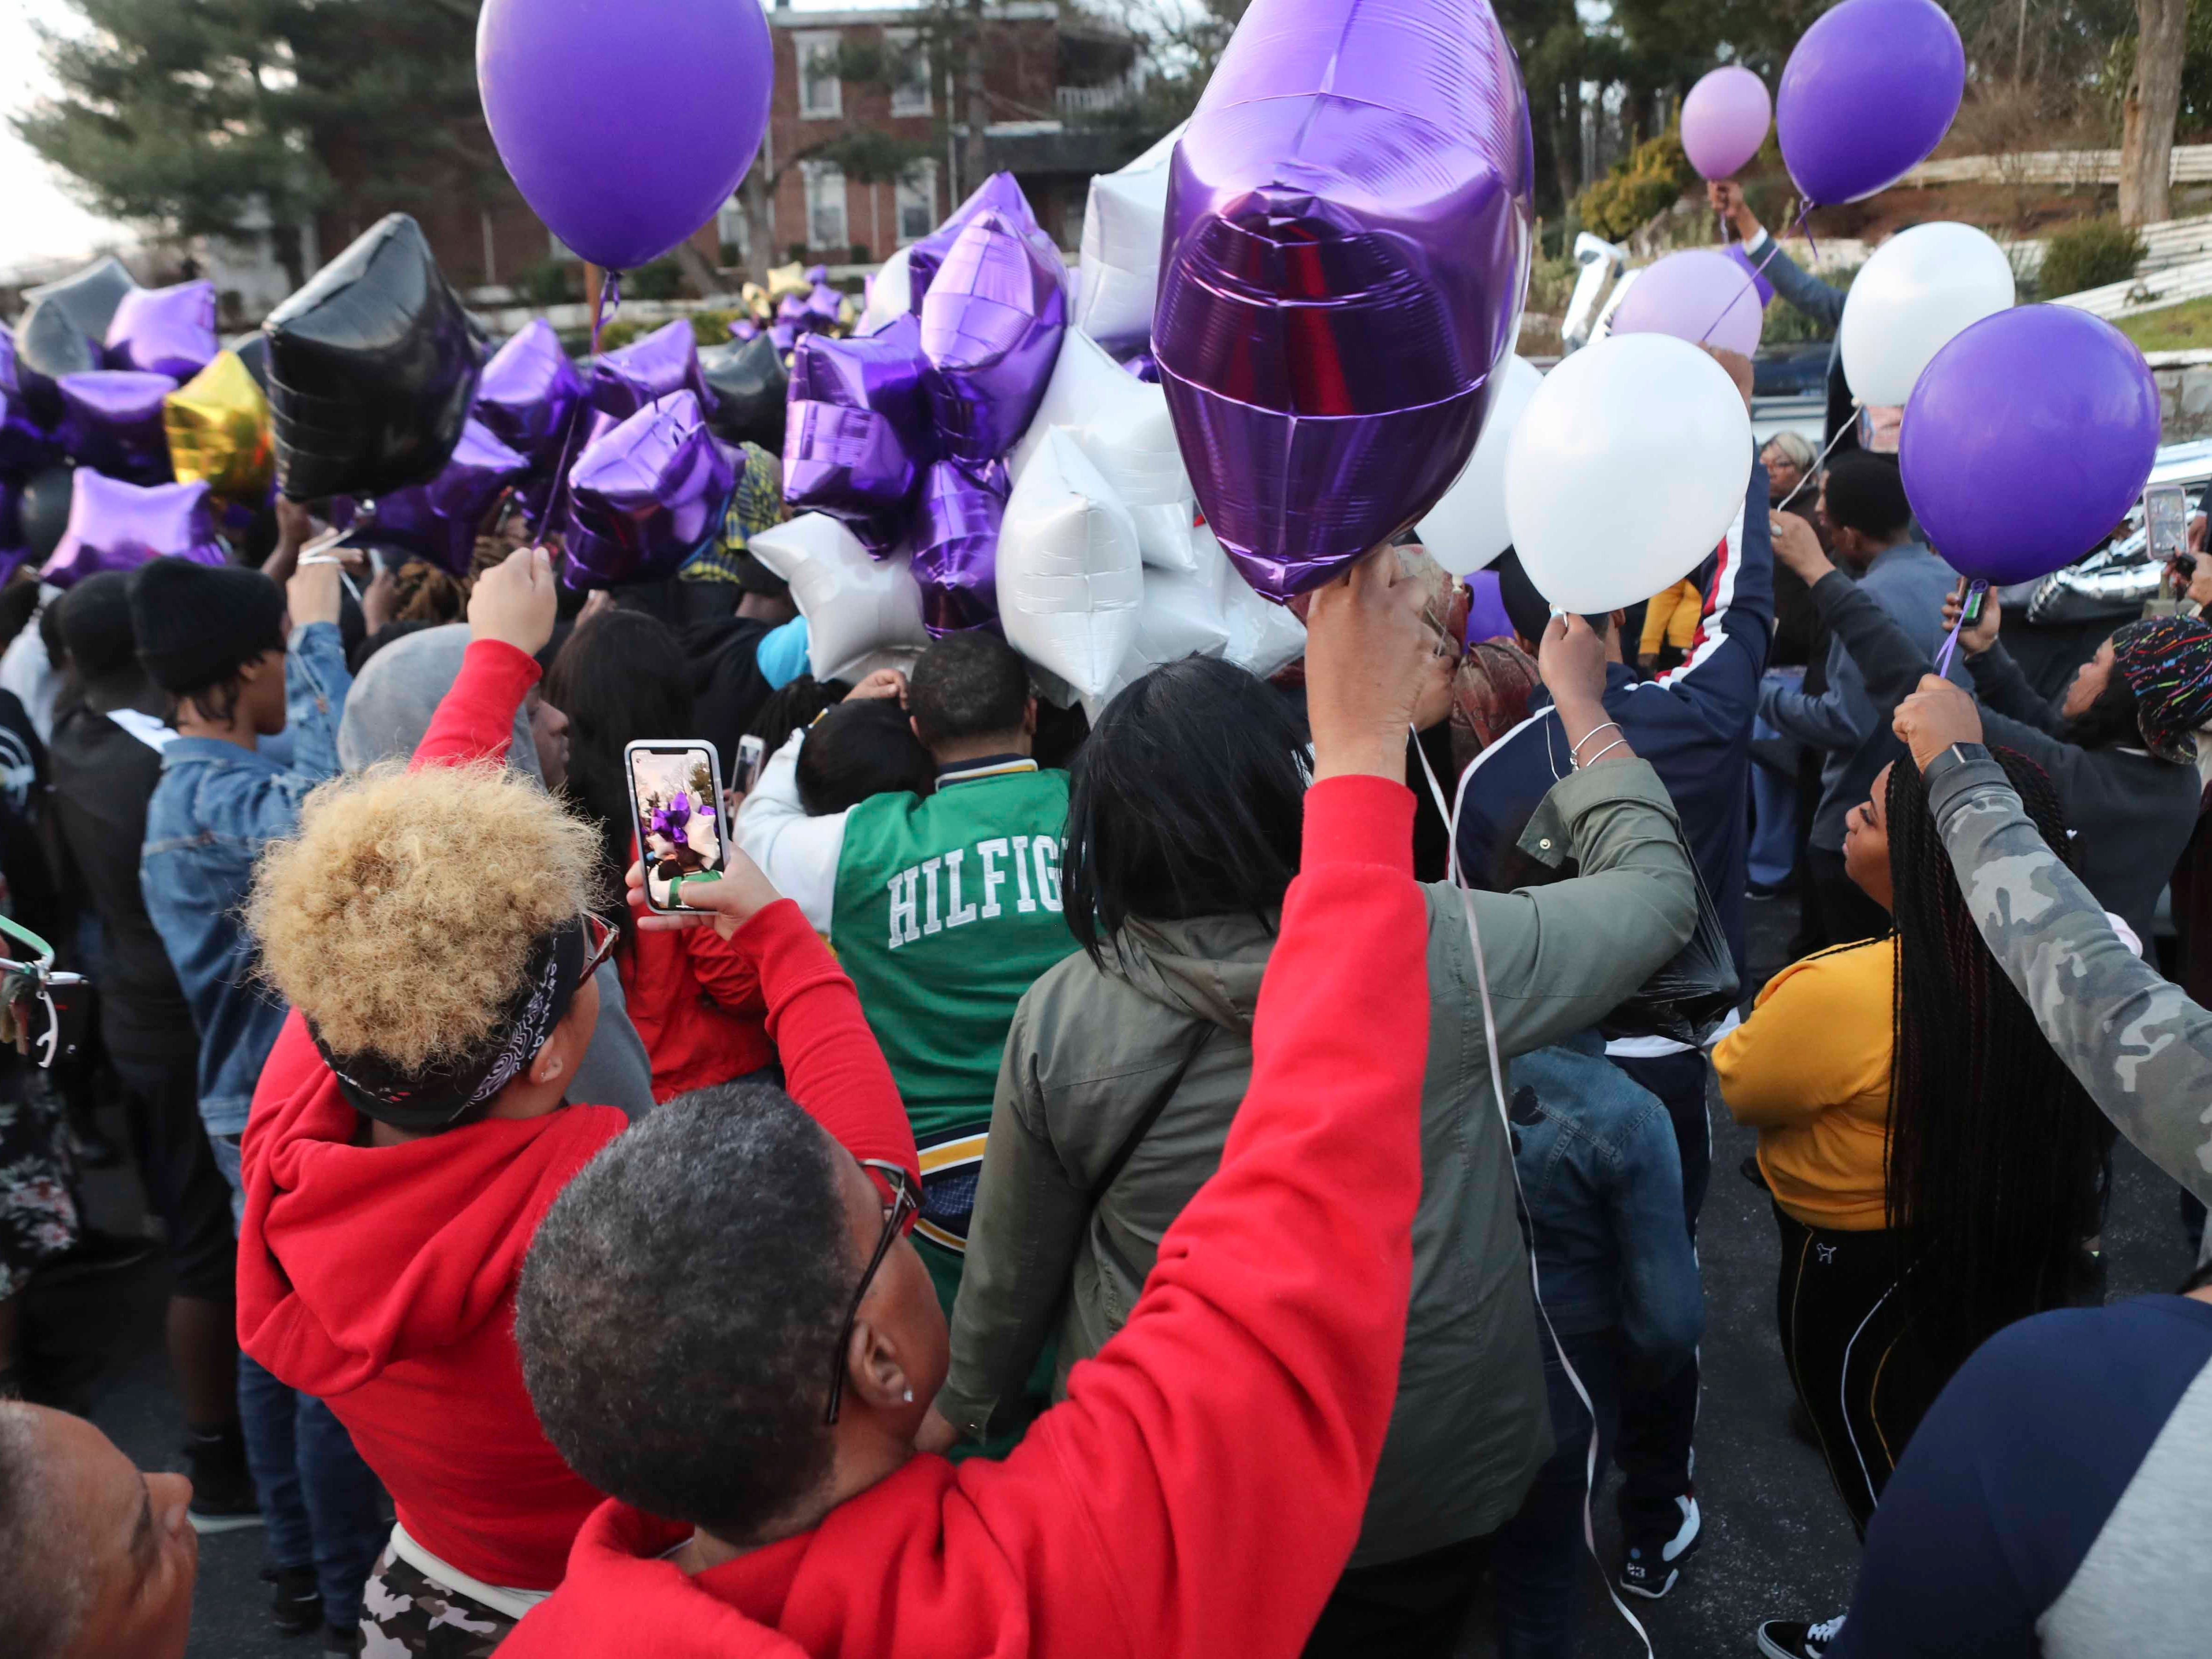 Mourners prepare to release balloons at the conclusion of a memorial gathering Friday evening for Janiya Henry in Wilmington. Henry and boyfriend Christian Coffield were killed earlier this week and left behind their 3-month-old son.